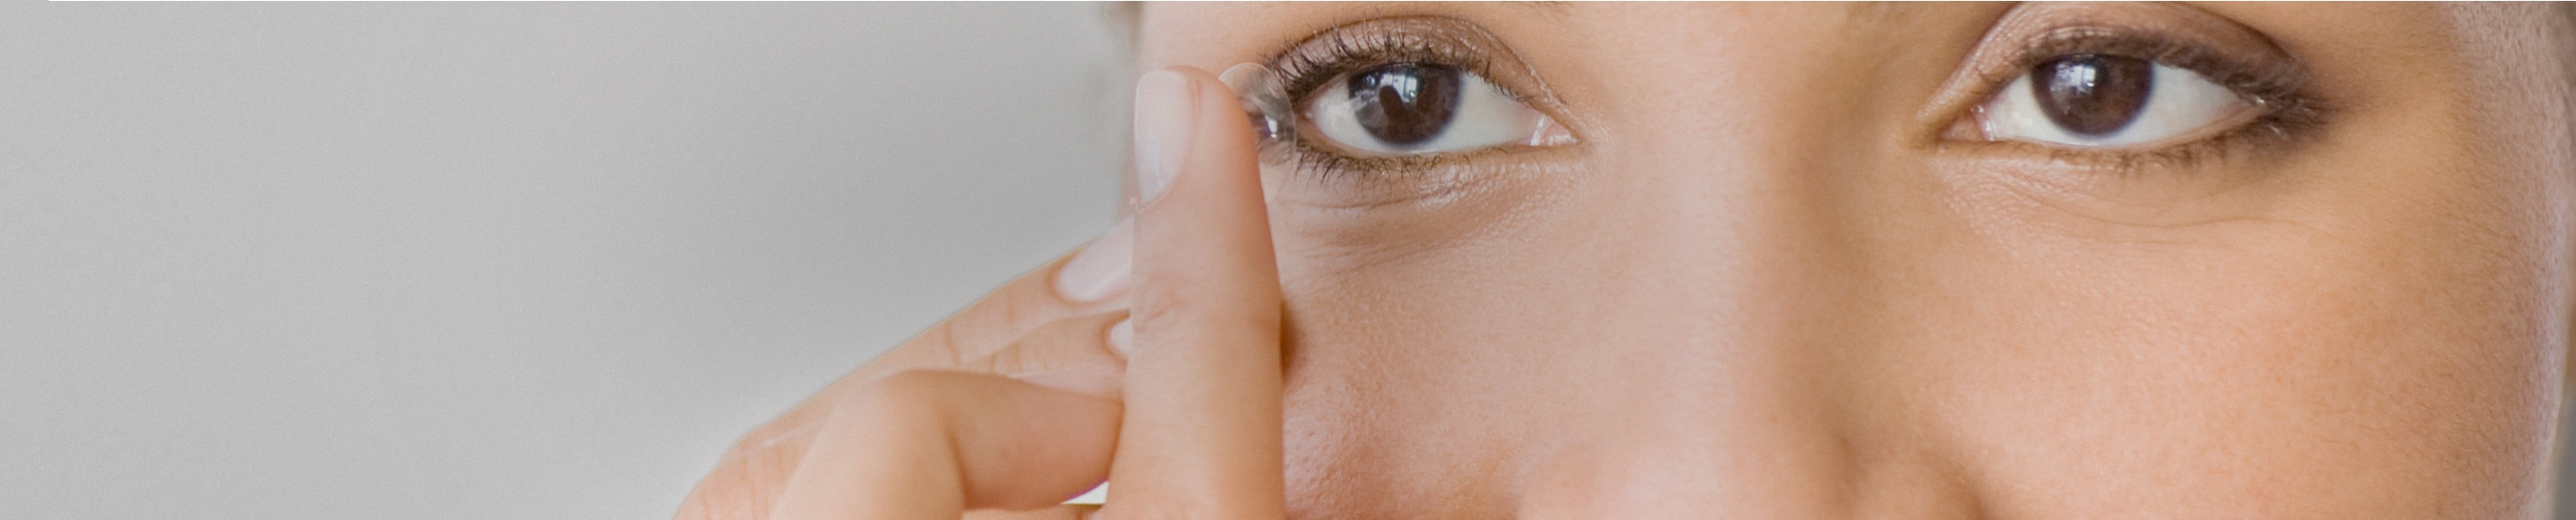 Close-up of a young woman with her contact lens on her fingertip about to put it in her eye